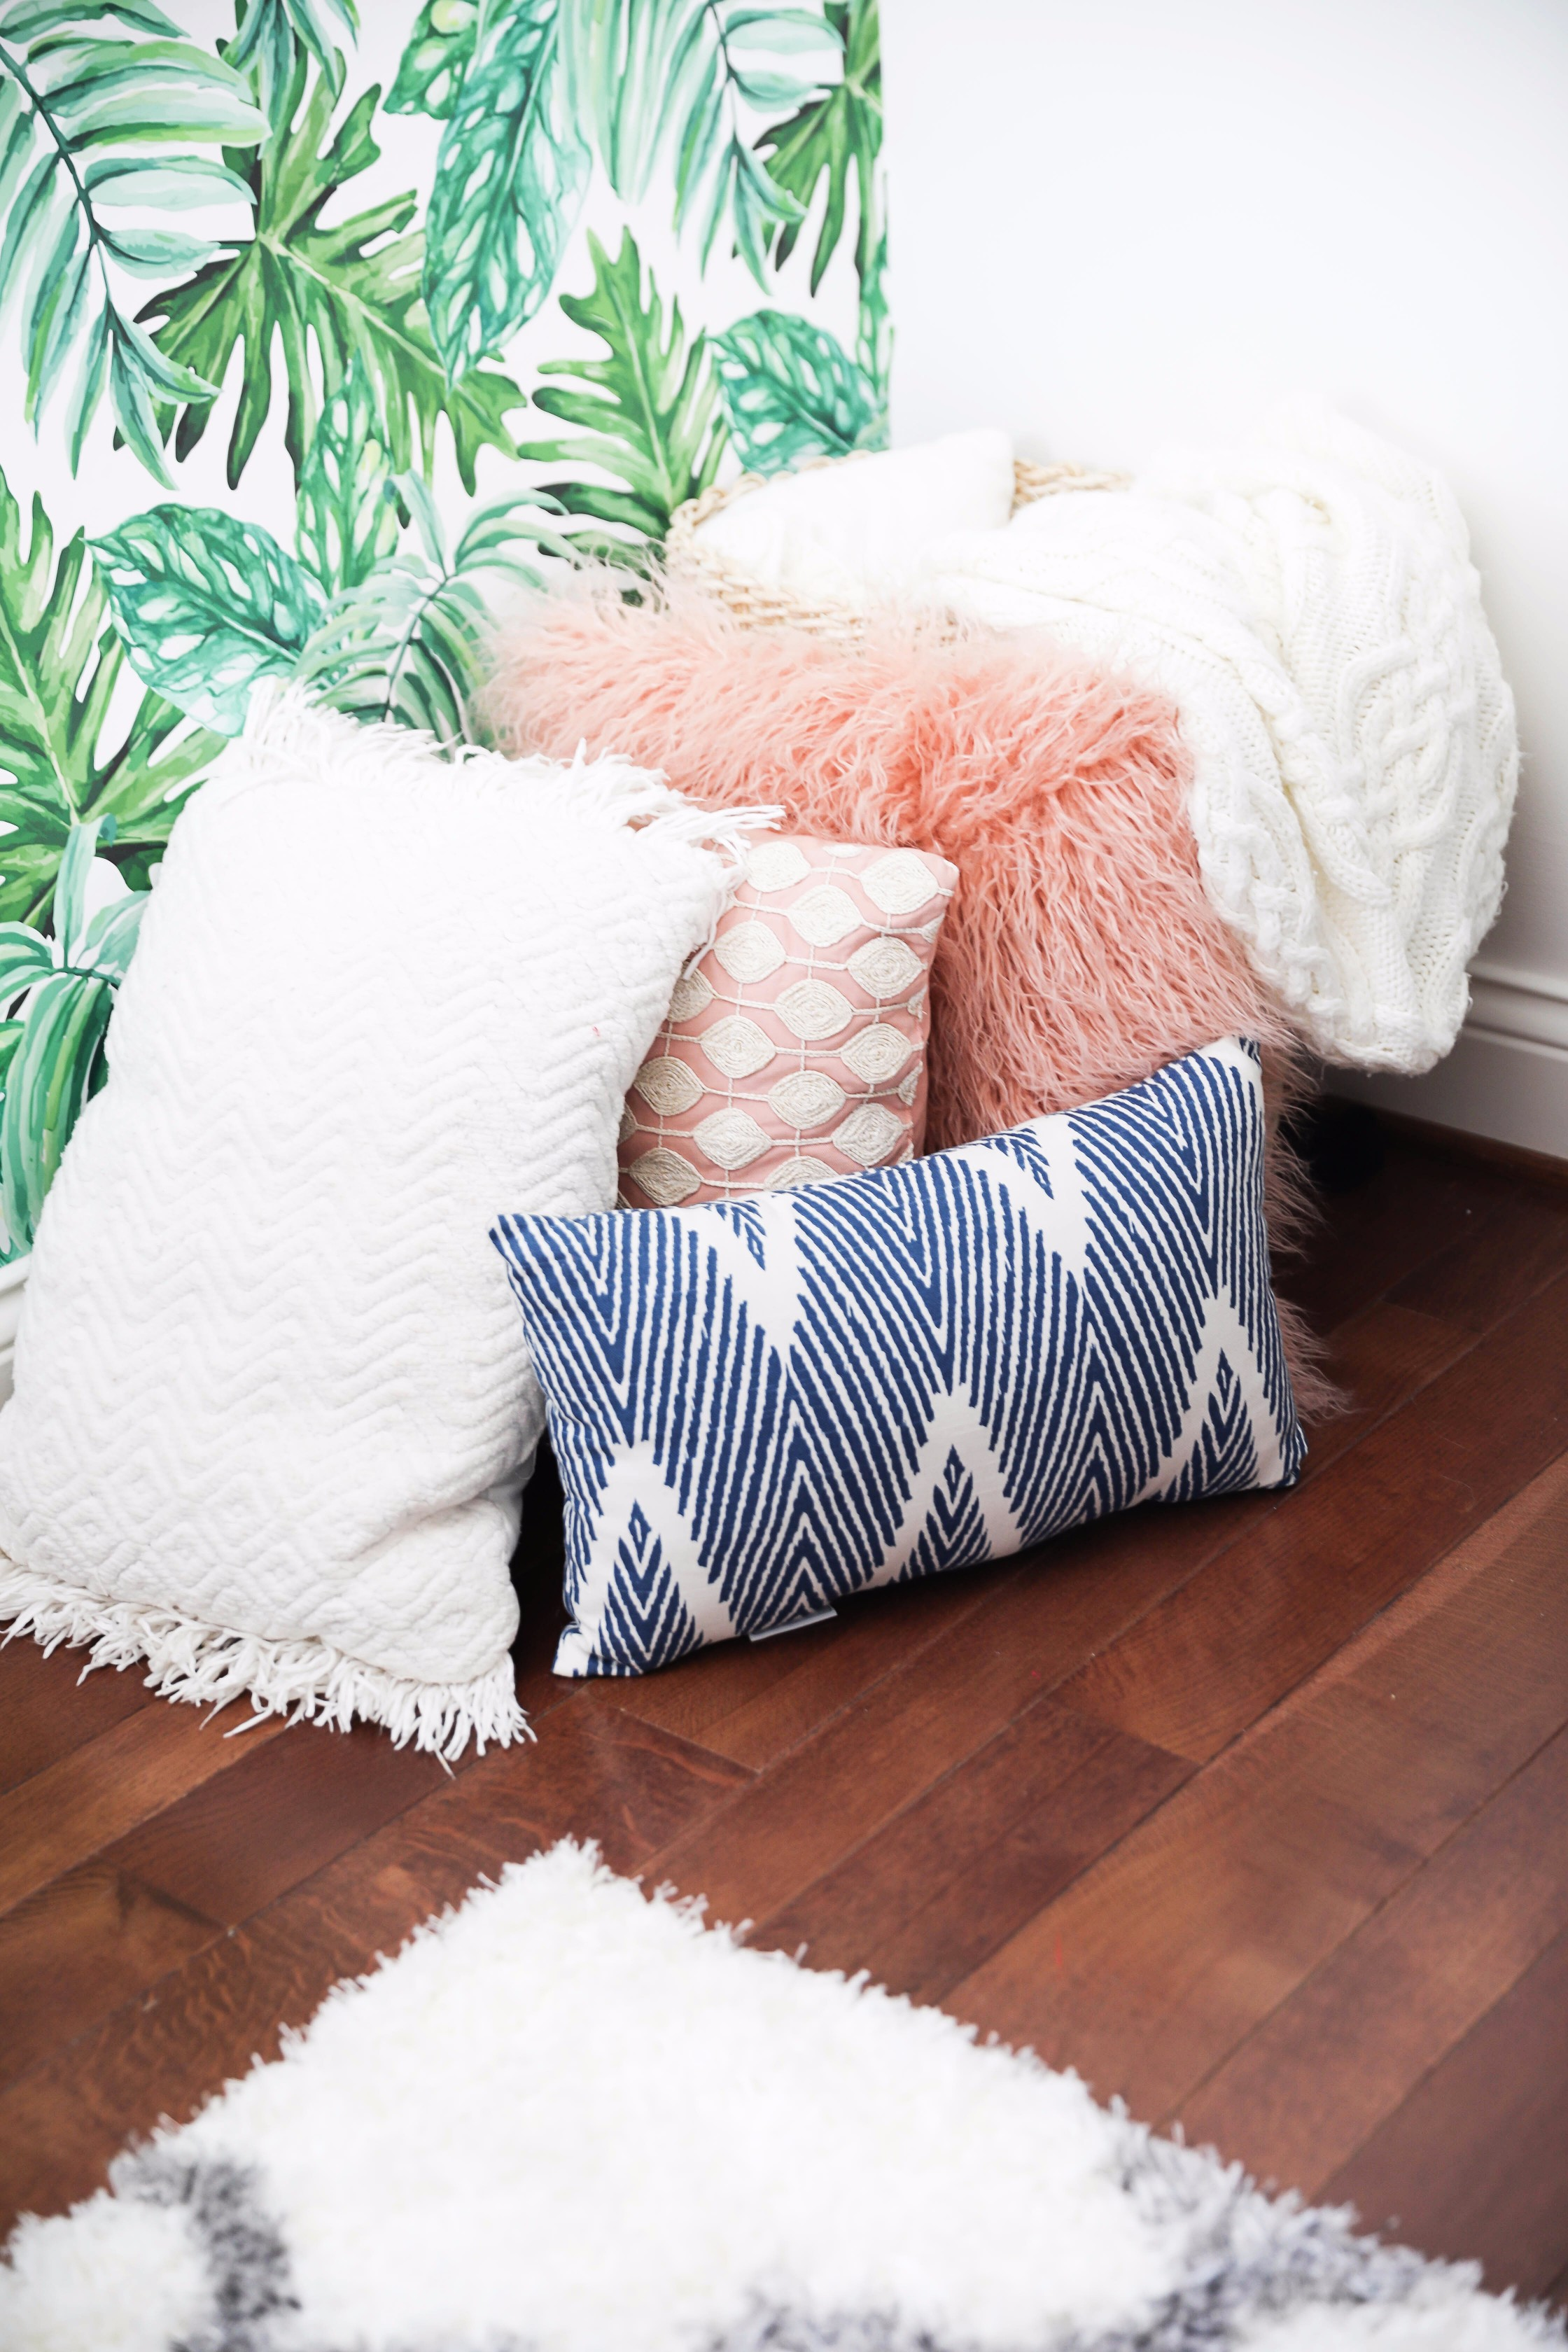 Palm leaf room tour! The perfect summer room decor is up this cute blog! I can't get enough of the palm leaves, tropical decor! Check out all the details on fashion and design blog daily dose of charm by lauren lindmark